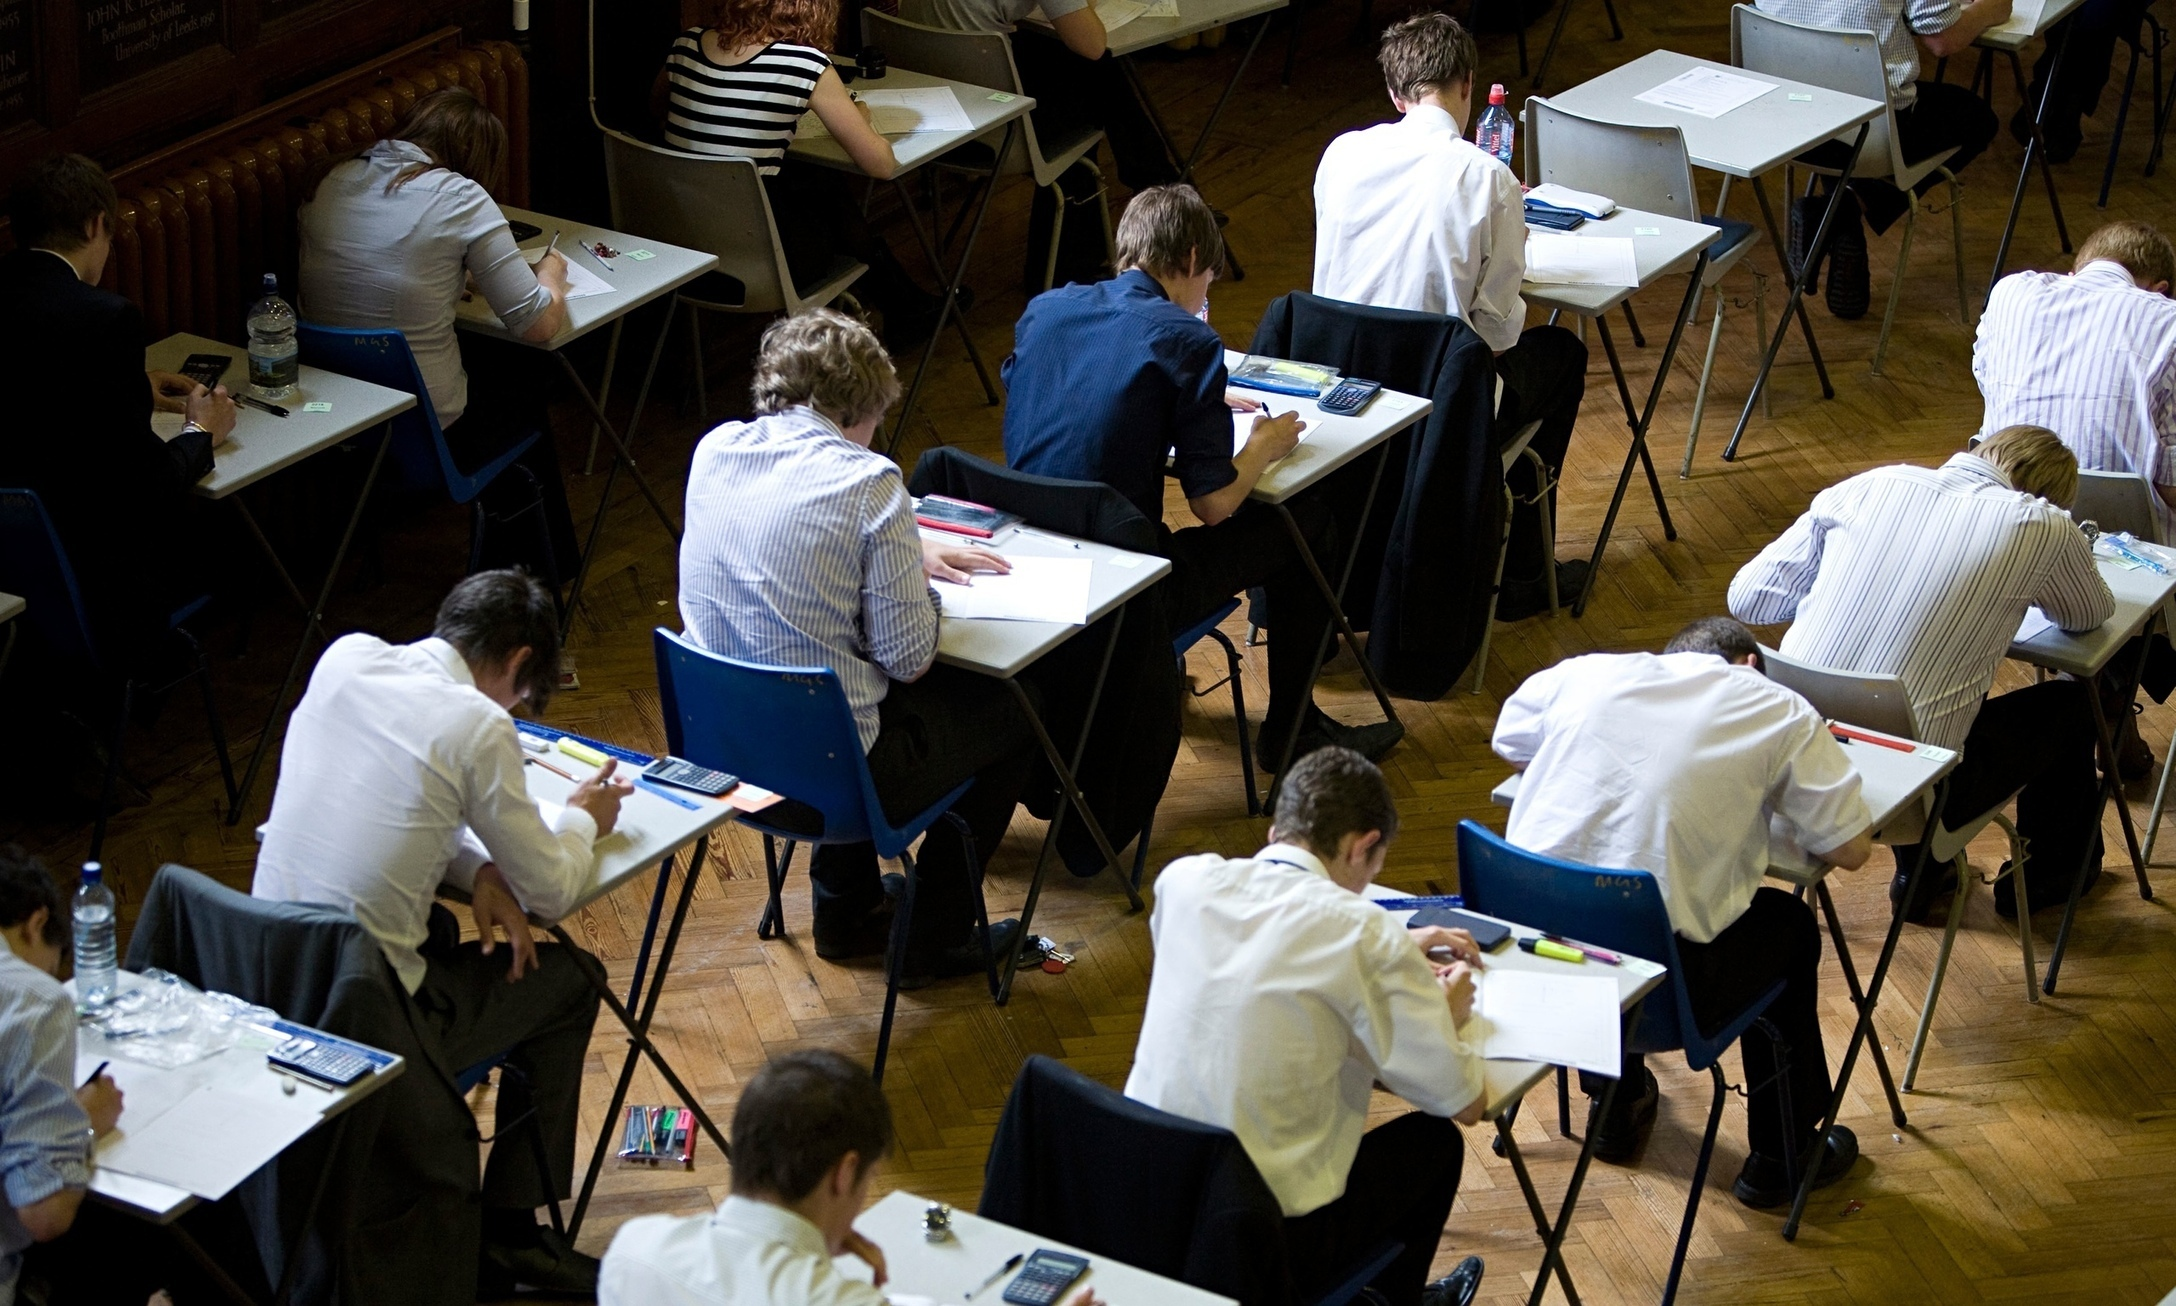 Schools manipulating exams system with tactical appeals, says regulator